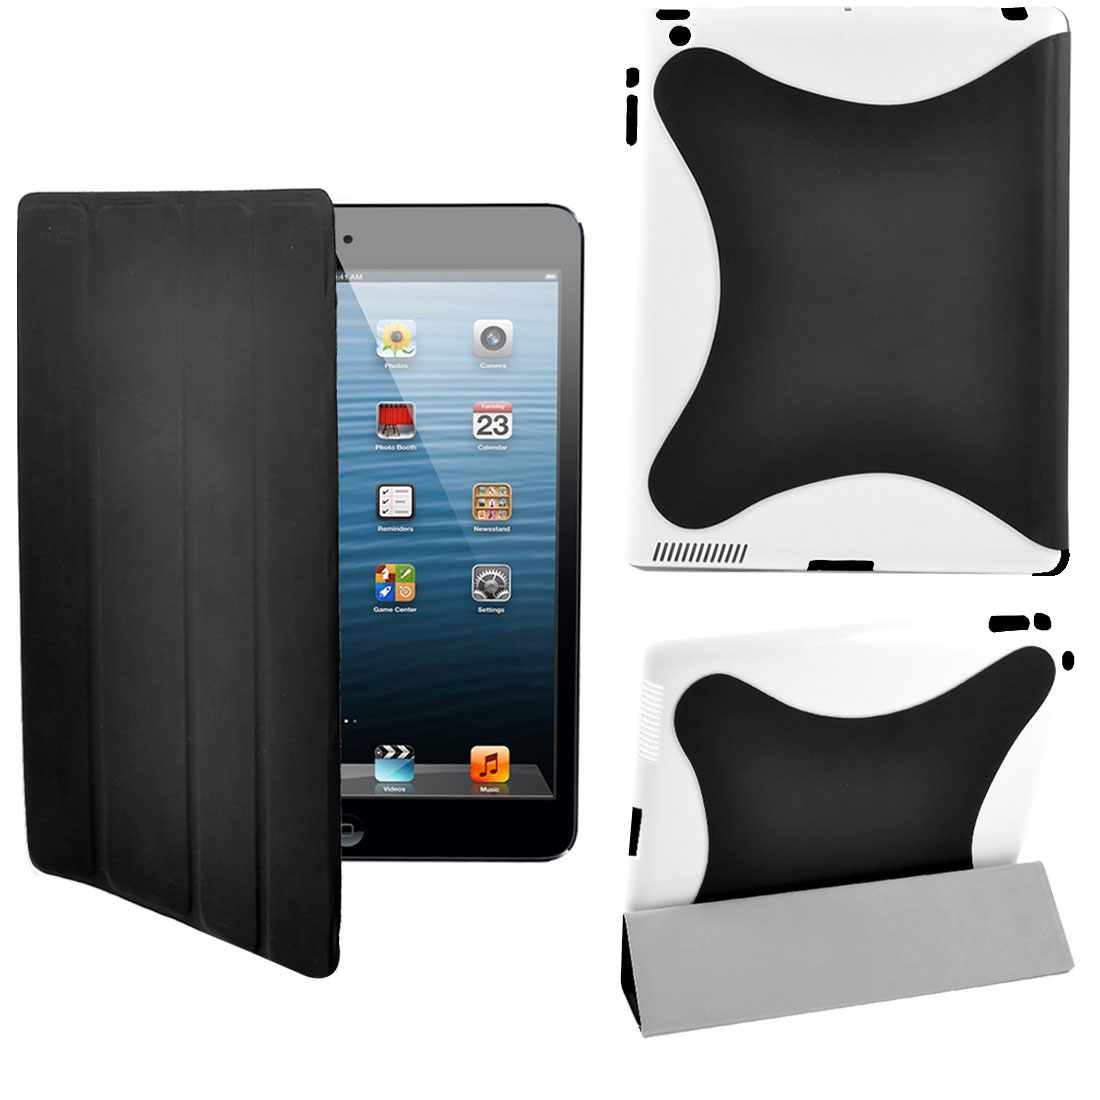 Black PU Leather Protective Stand Case Smart Cover for iPad 2